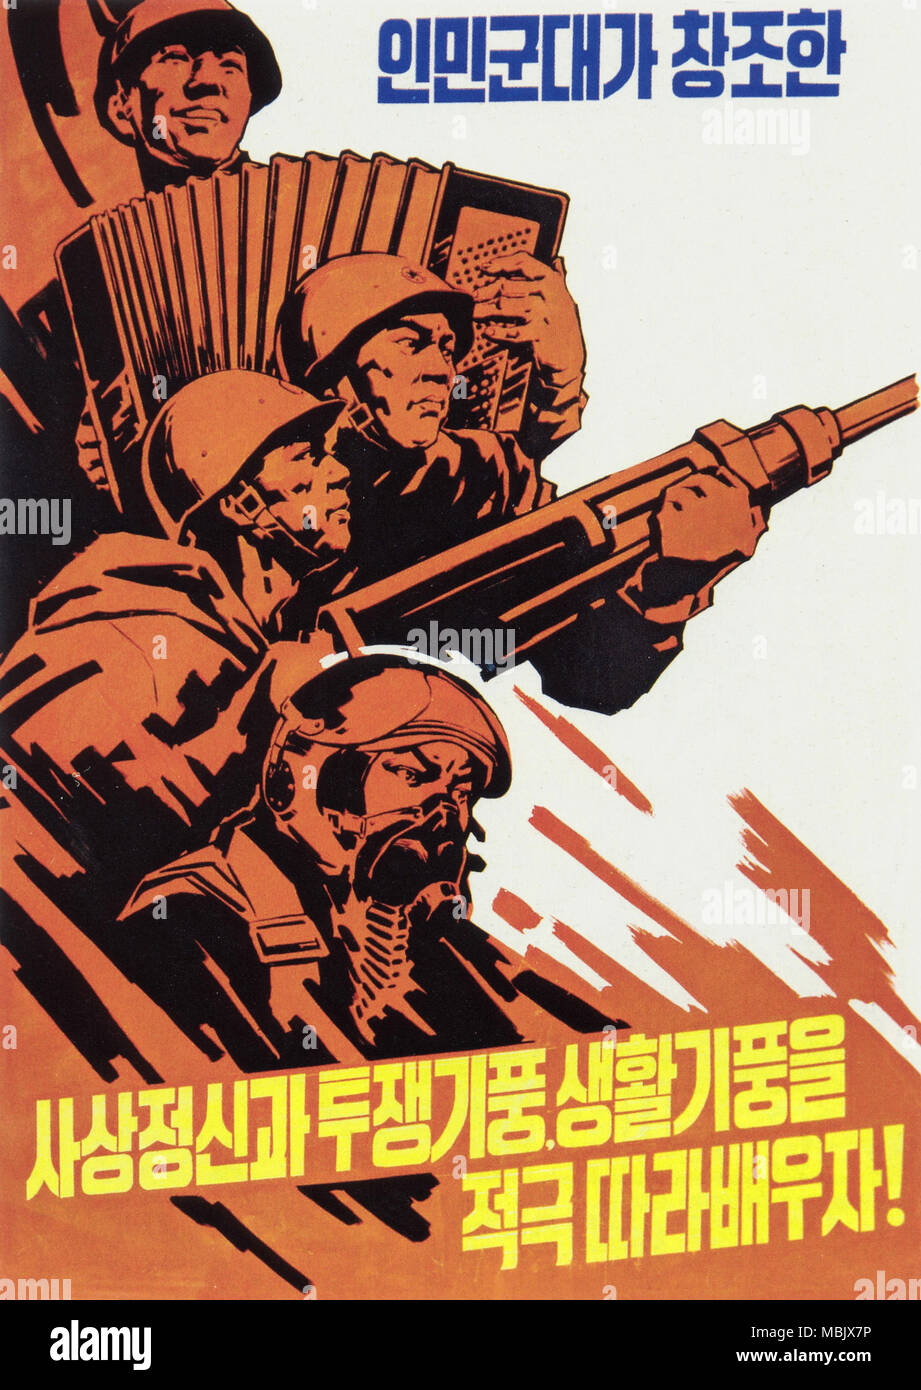 Learn from the way of life, the fighting spirit & the ideological mind that the People's Army founded! - Stock Image